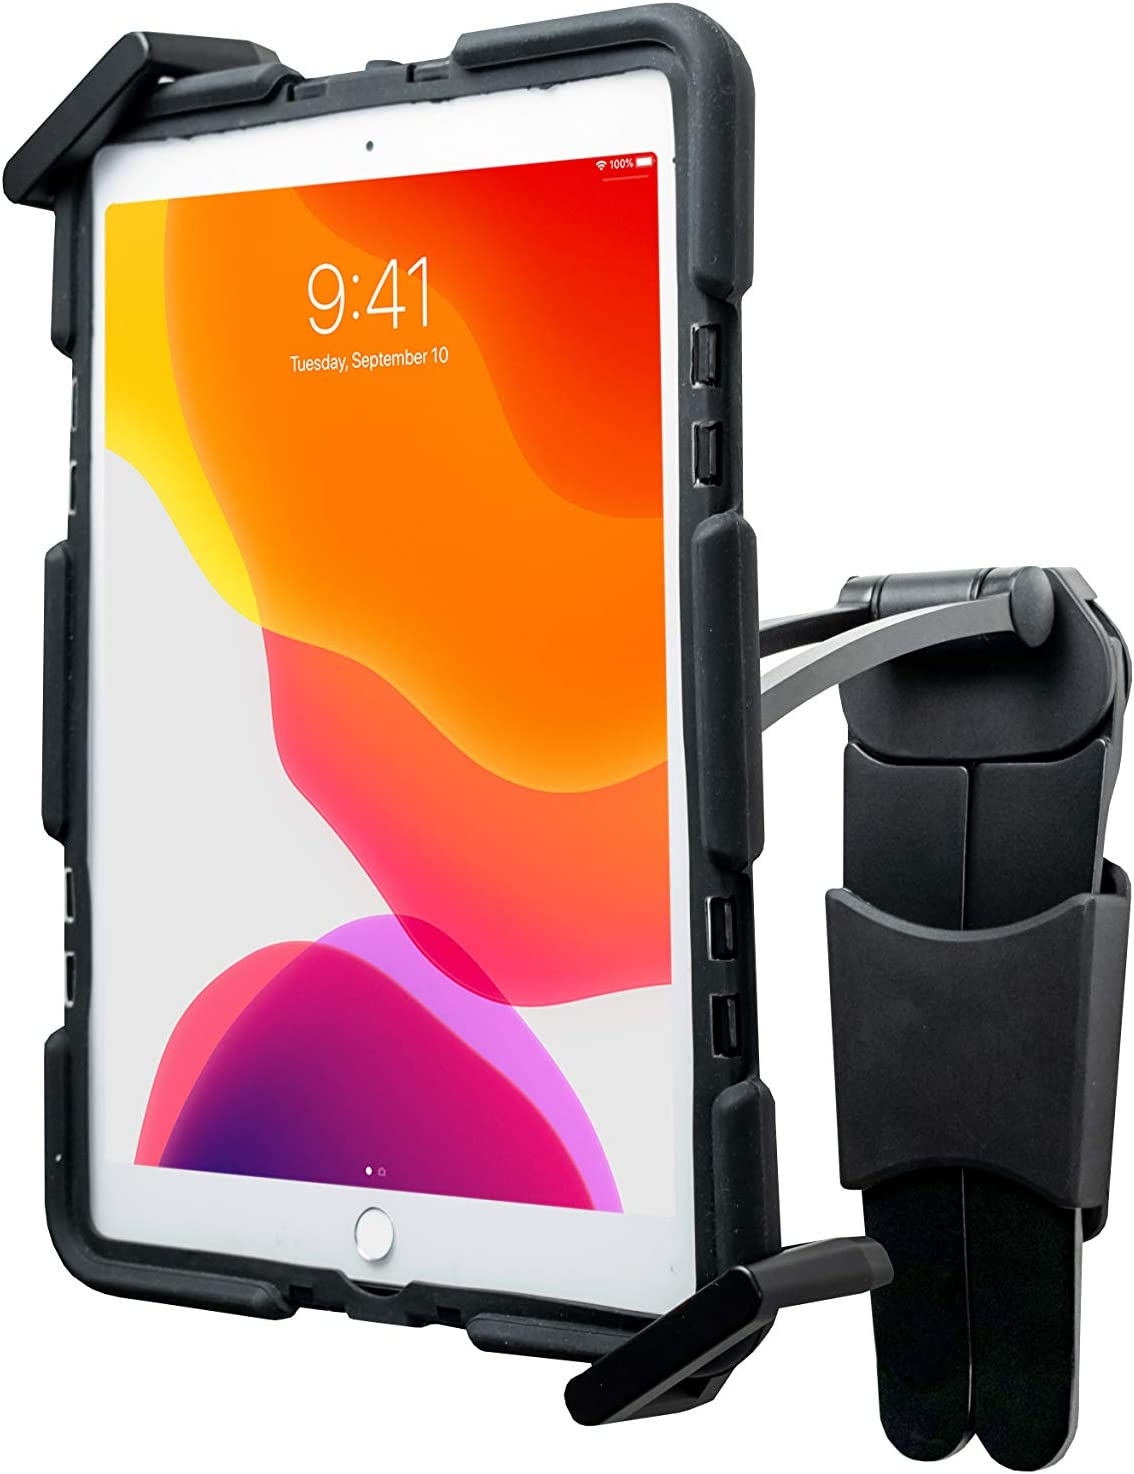 2-in-1 Tablet Stand - CTA Multi-Flex Stand and Magnetic Wall Mount for Most iPad 7th & 8th Gen 10.2